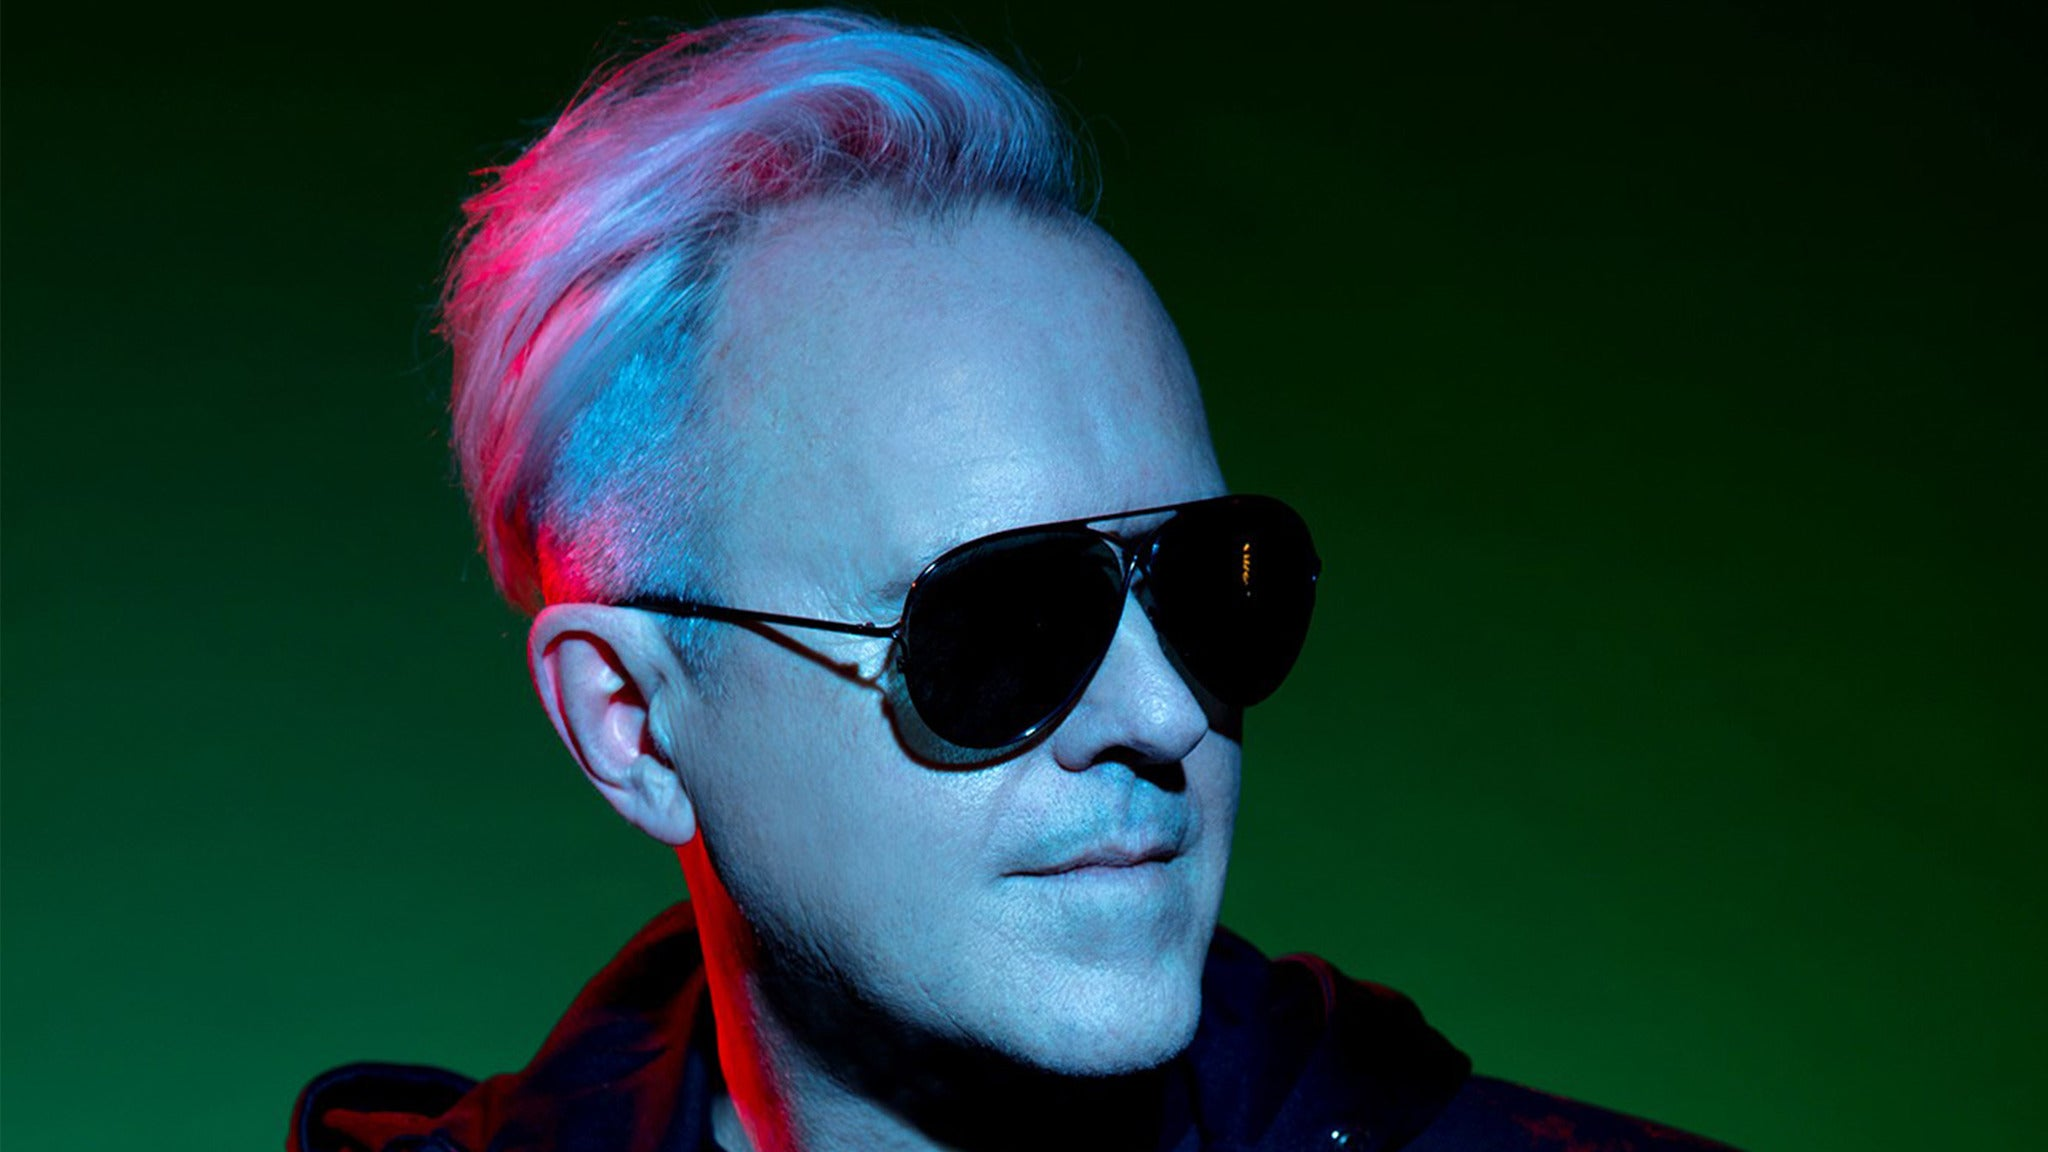 Howard Jones Acoustic Trio Tour pre-sale code for early tickets in Huntington